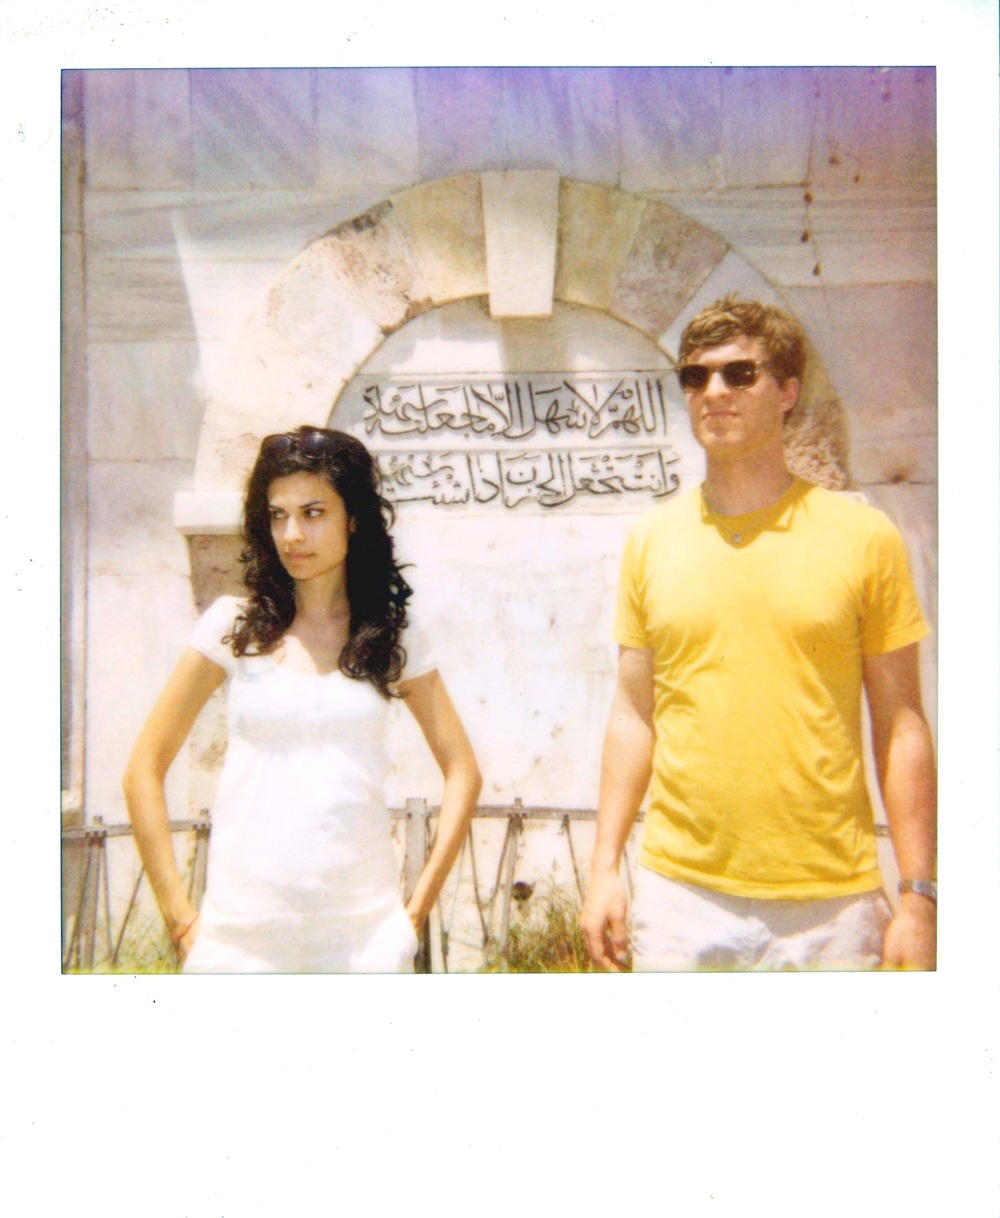 jaffa naim and shirin arabic acdc.jpg